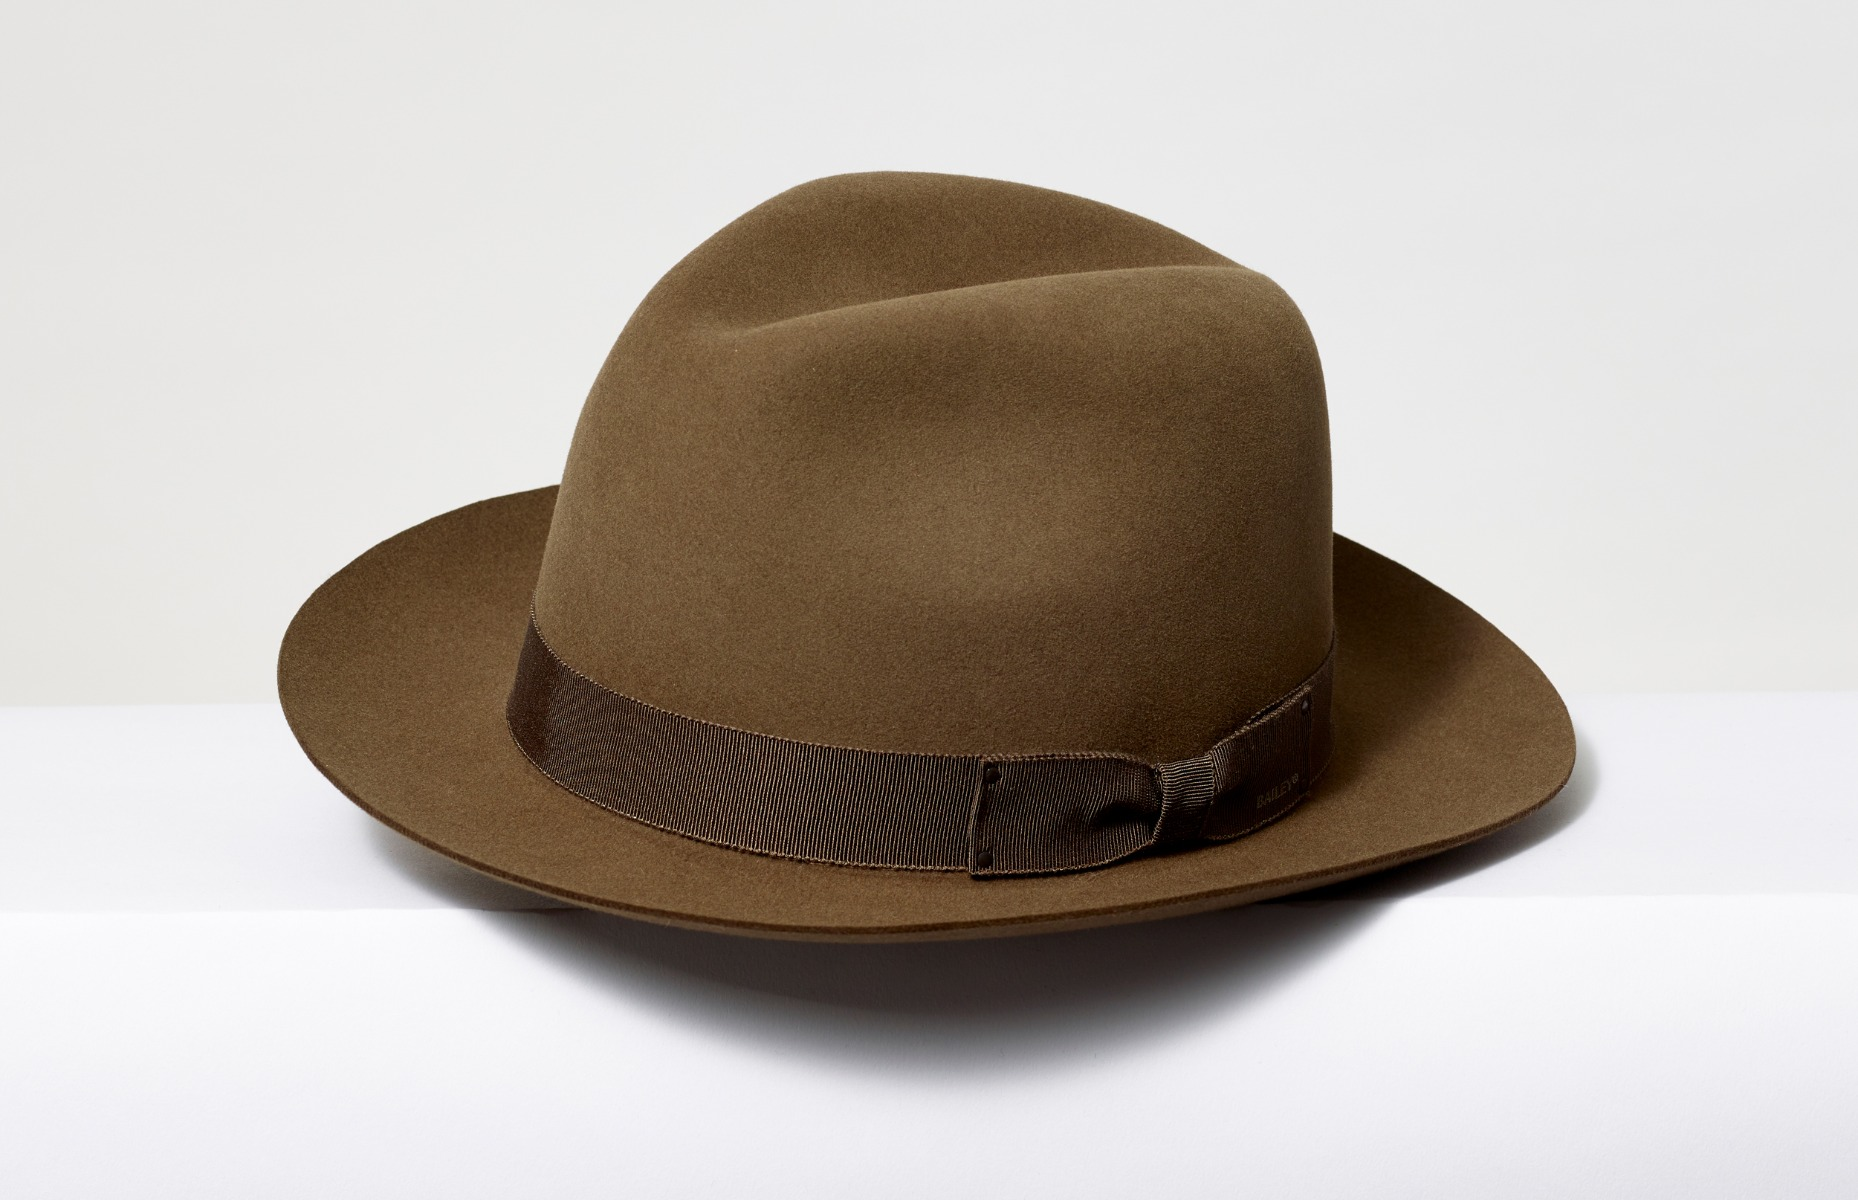 A brown, hopper-esque hat